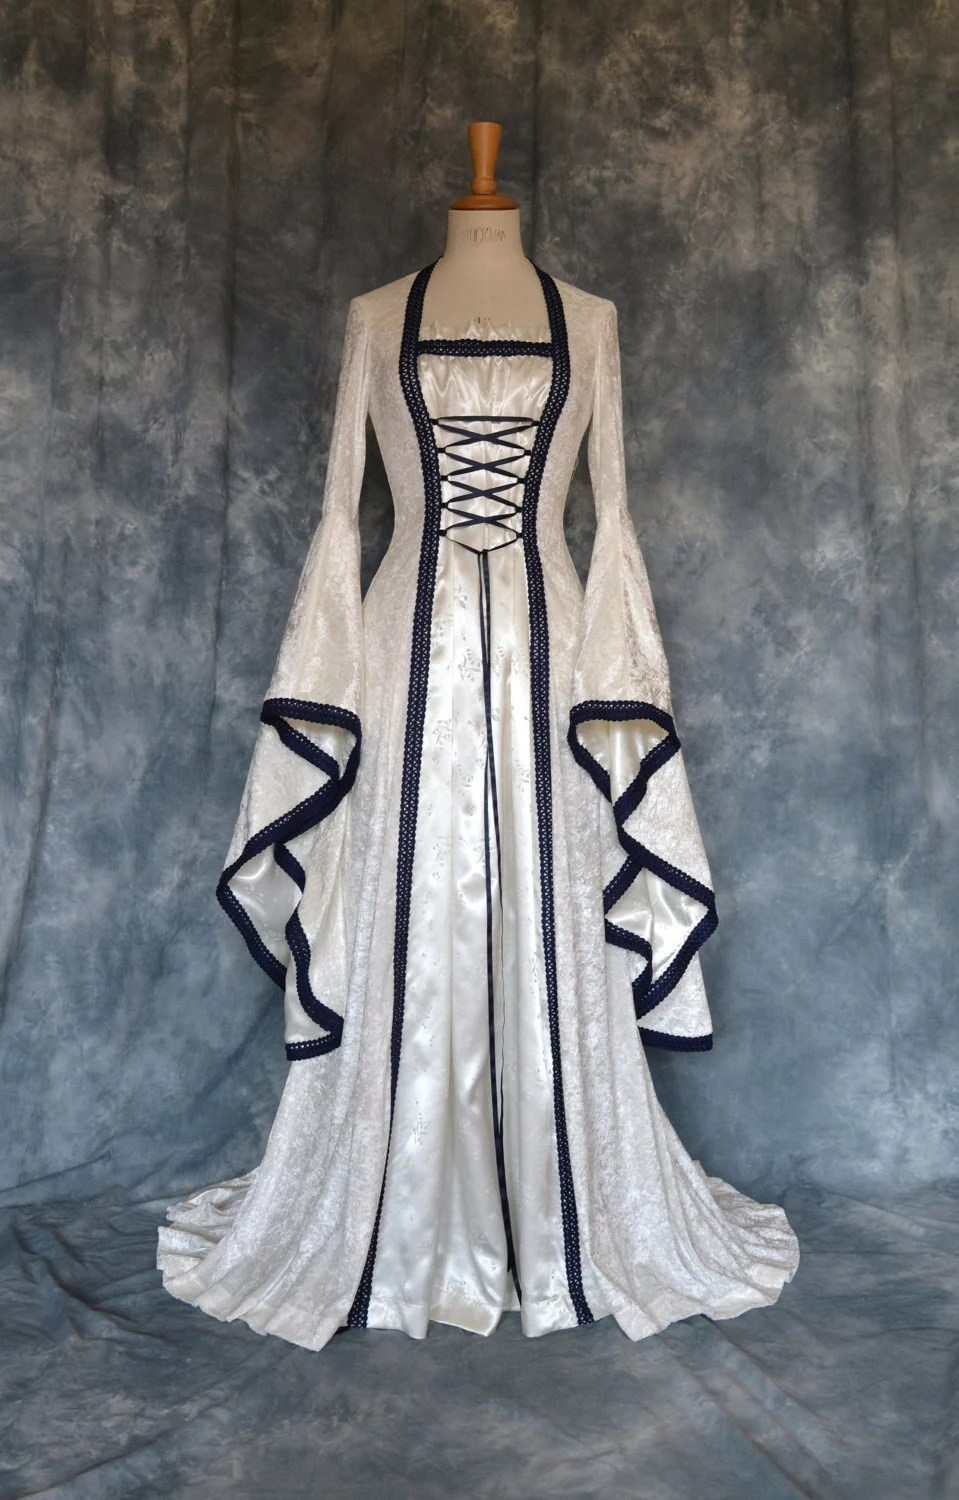 traditional celtic wedding dresses medieval wedding dress Here s an interesting one traditional bridal gowns were never white but blue The popularity of the white wedding dress representing virginity and purity